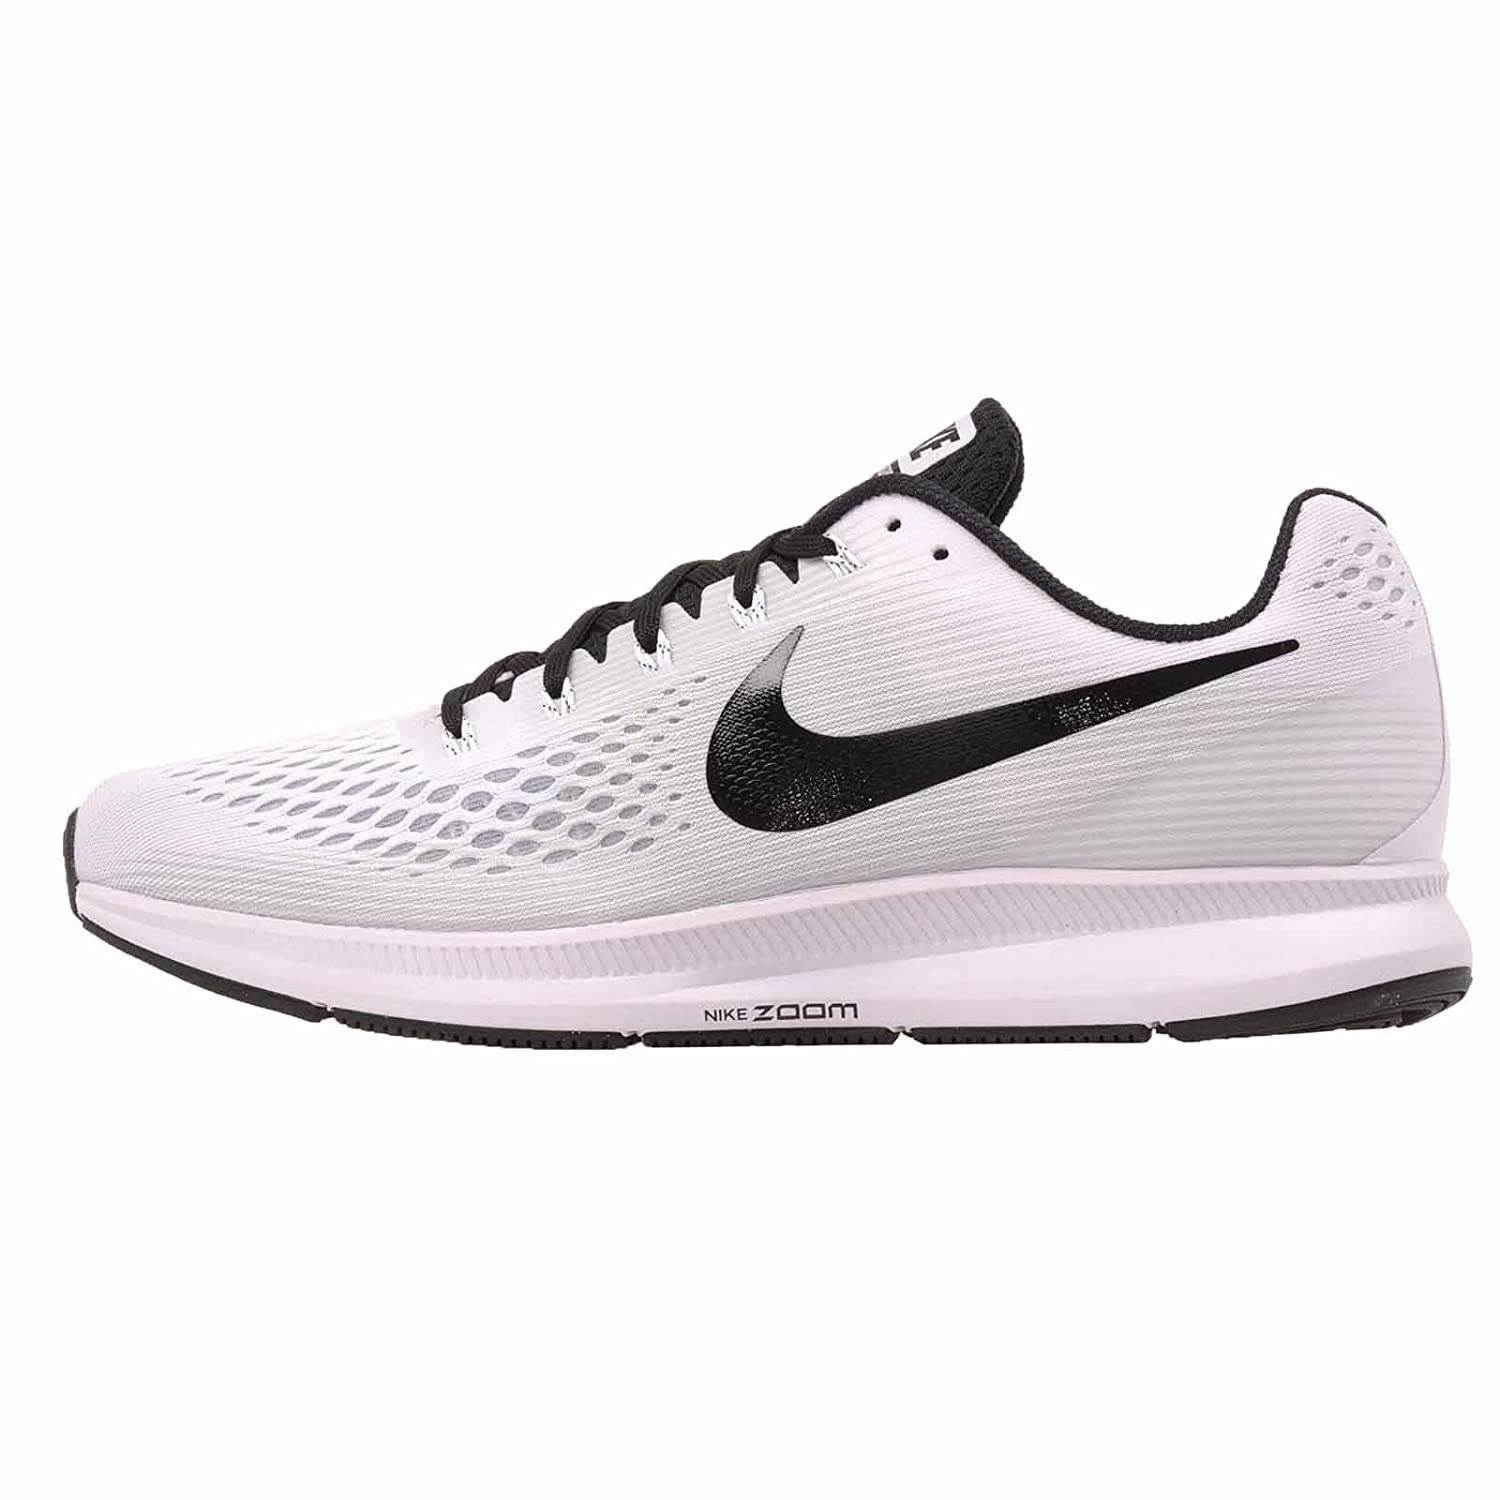 the latest 6d470 50b3b Nike Air Zoom Pegasus 34 TB 887009-100 White/Black Men's Running Shoes (14)